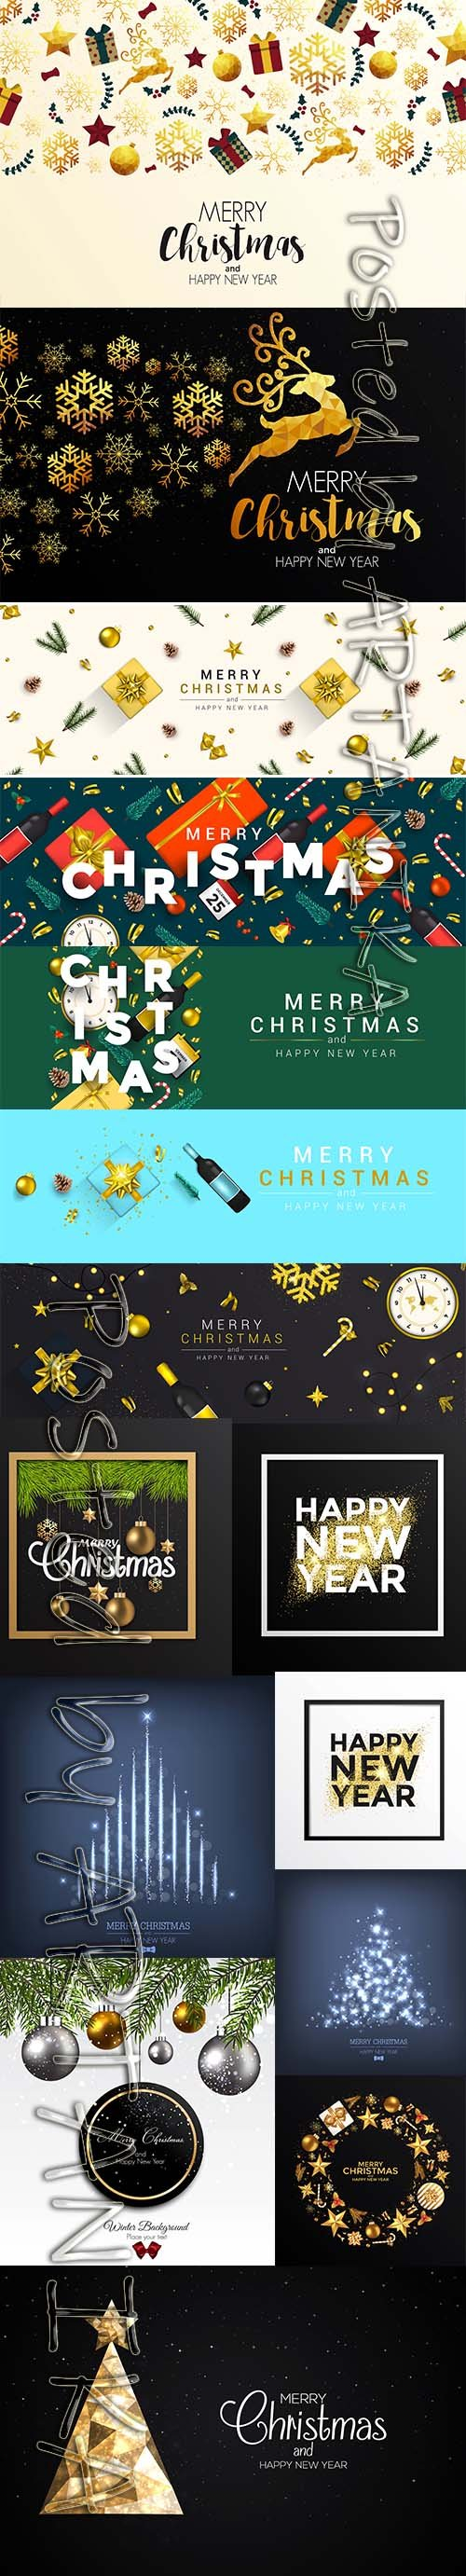 Holiday New Year Card and Merry Christmas Background Set